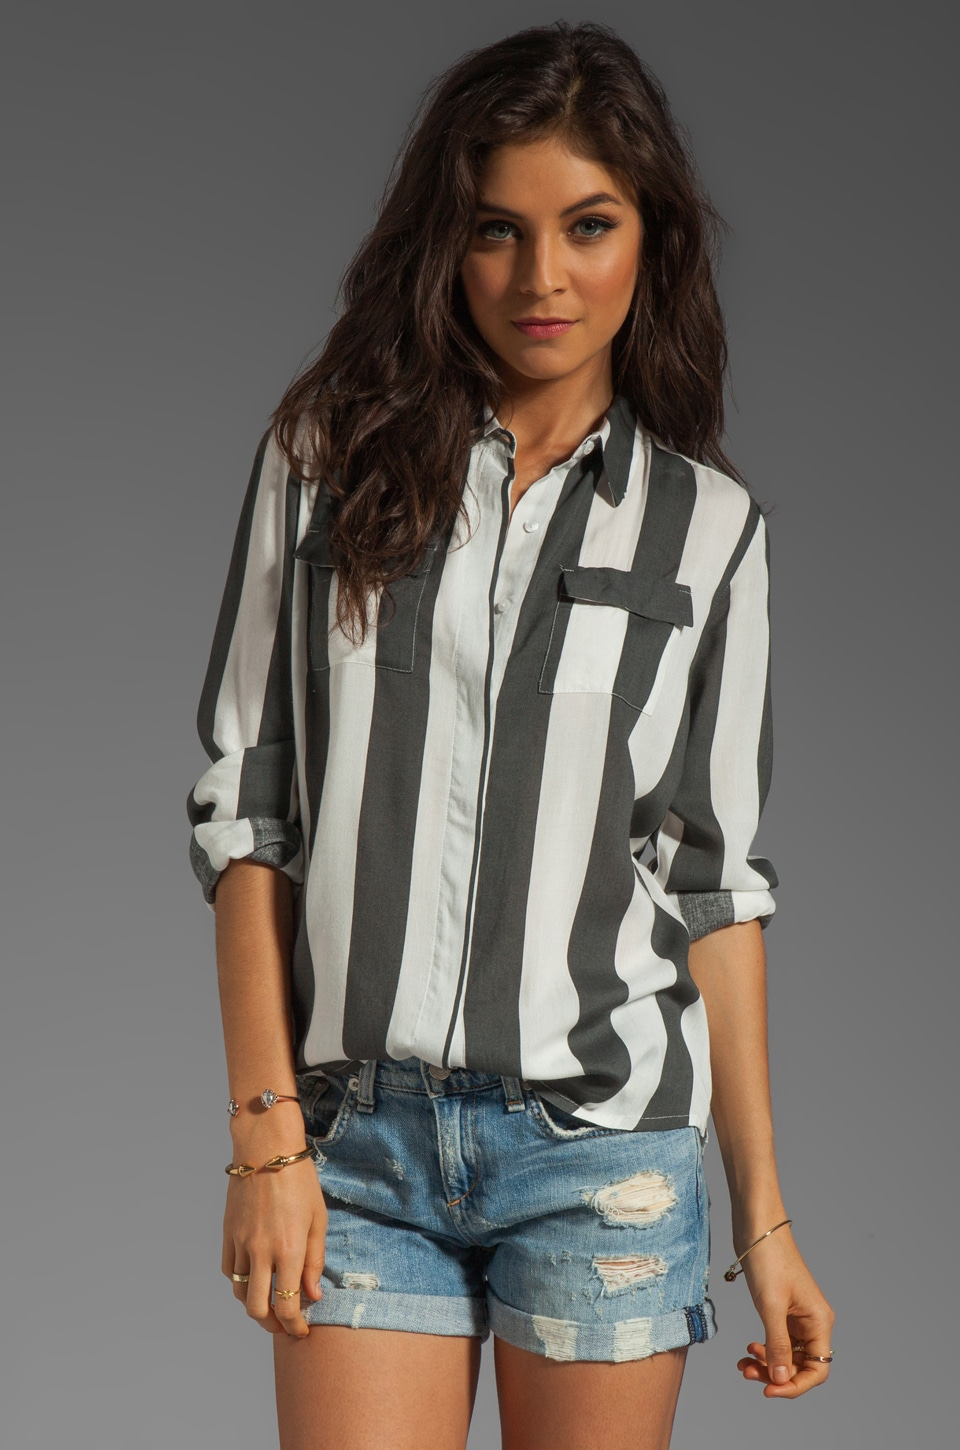 NEUW Daphne Shirt in Black/White